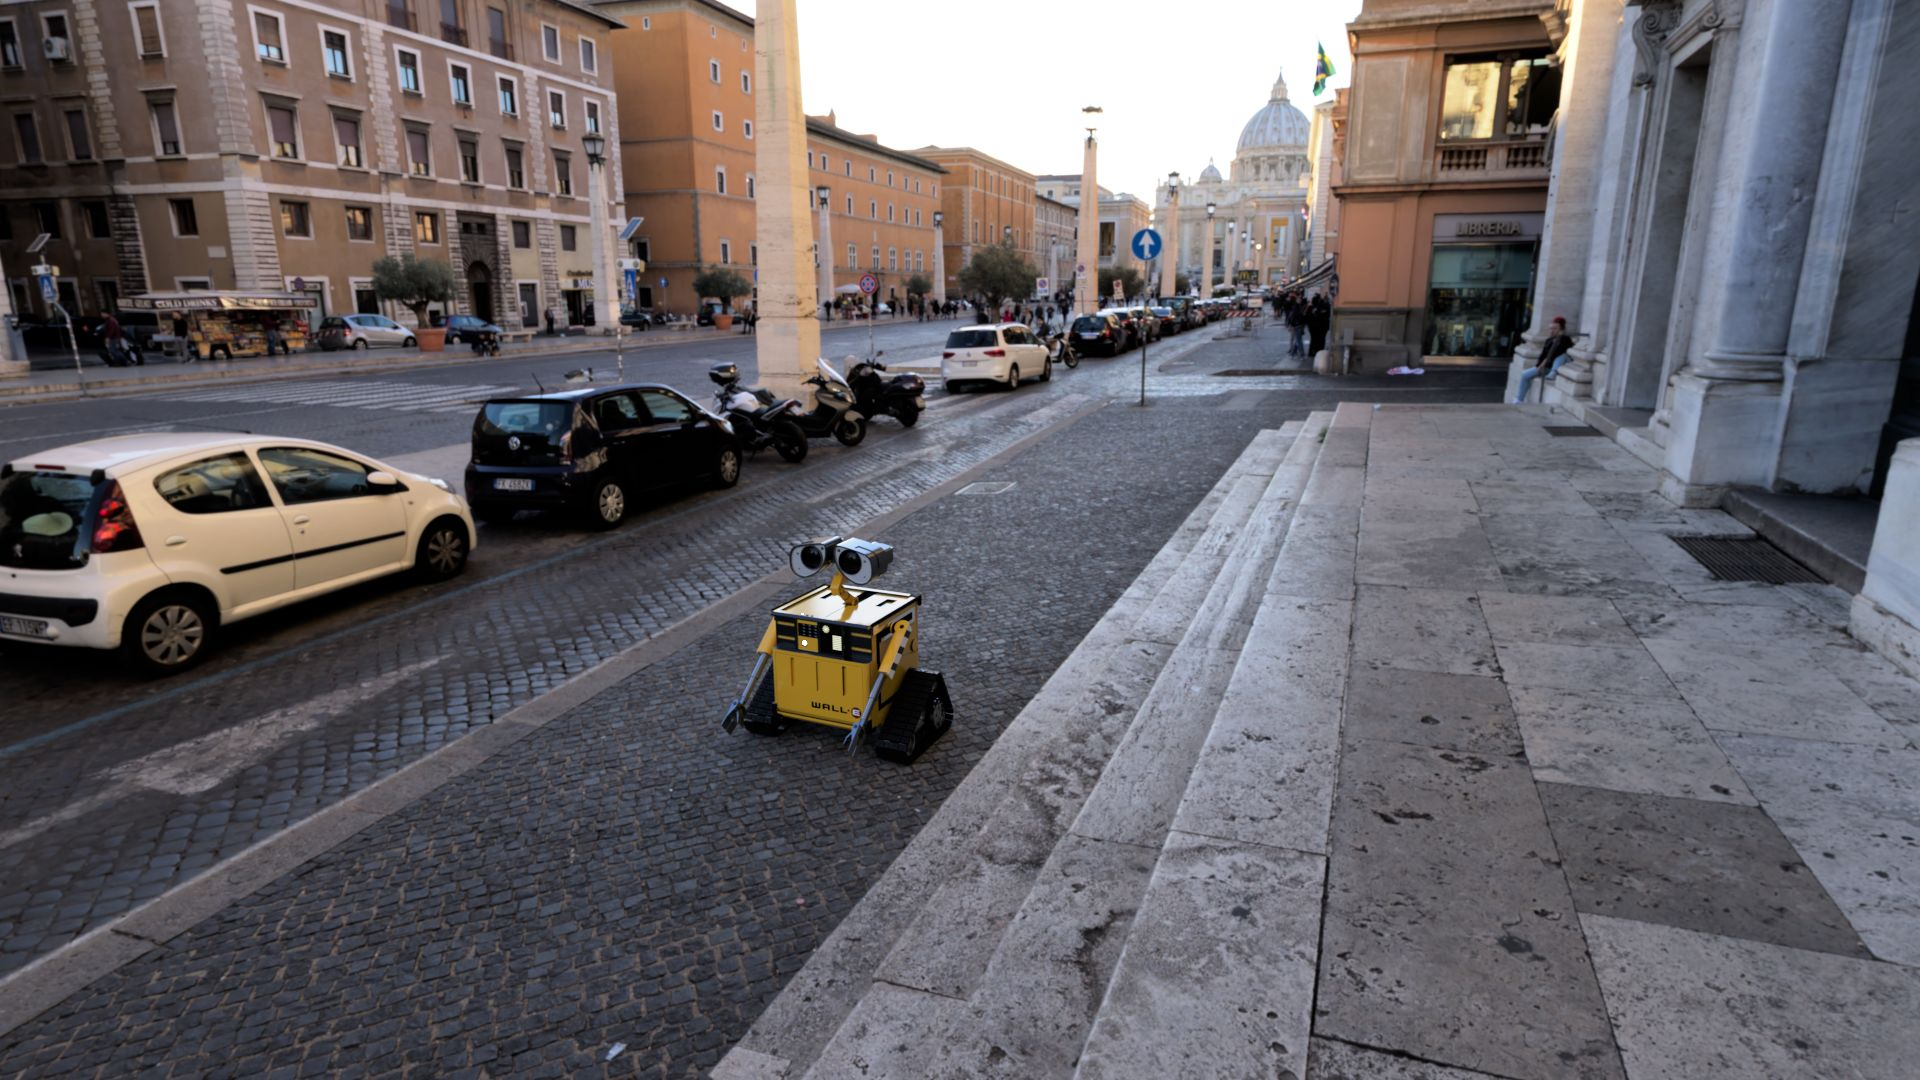 Wall-e-v1-2019-mar-23-04-10-58pm-000-customizedview7392481146-png-3500-3500